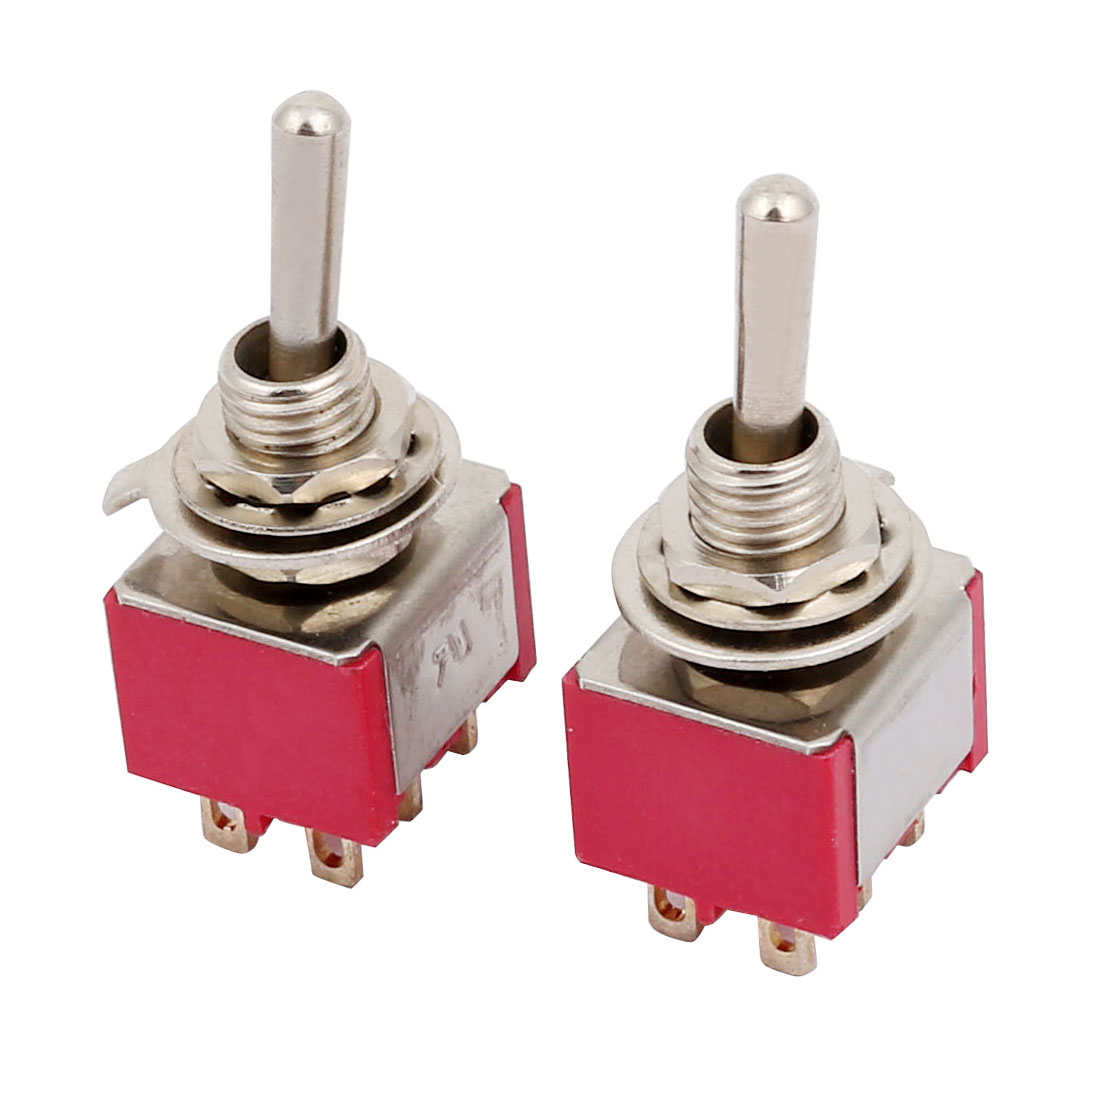 DPST ON-ON 2 Way 6 Terminals Latching Toggle Switch AC 250V 5A